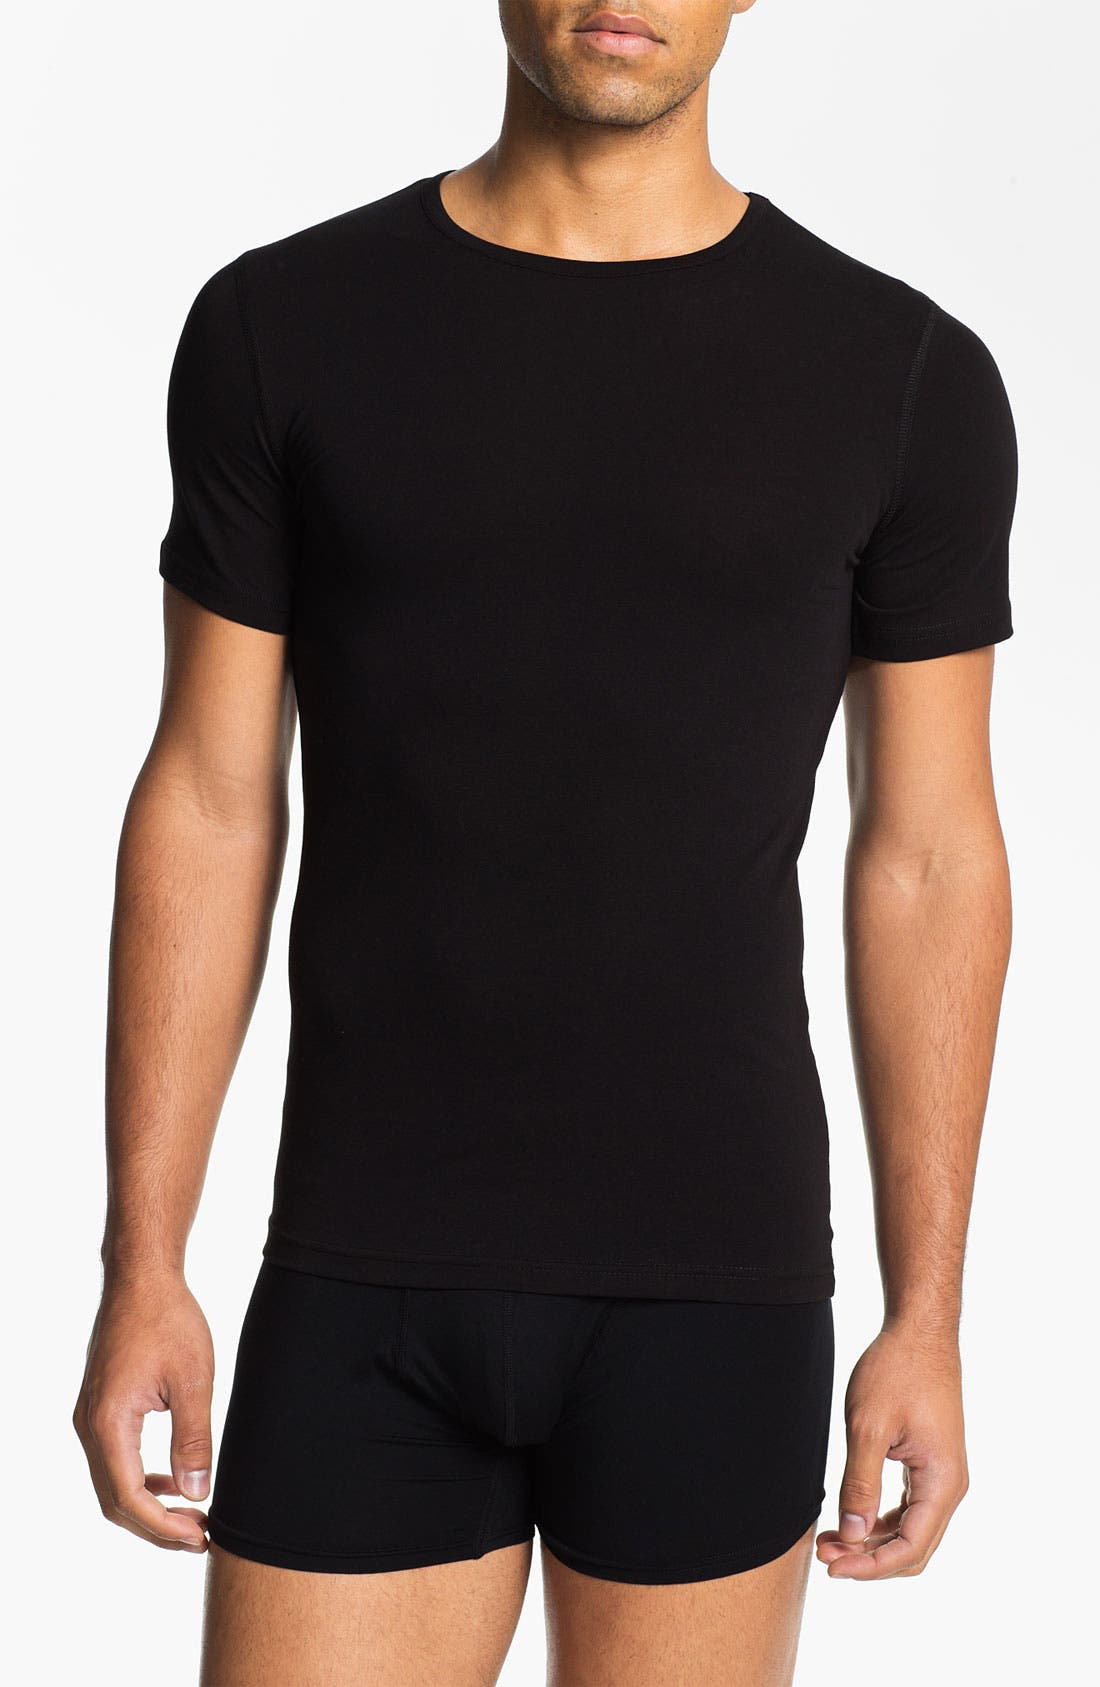 Main Image - Naked Crewneck Cotton Undershirt